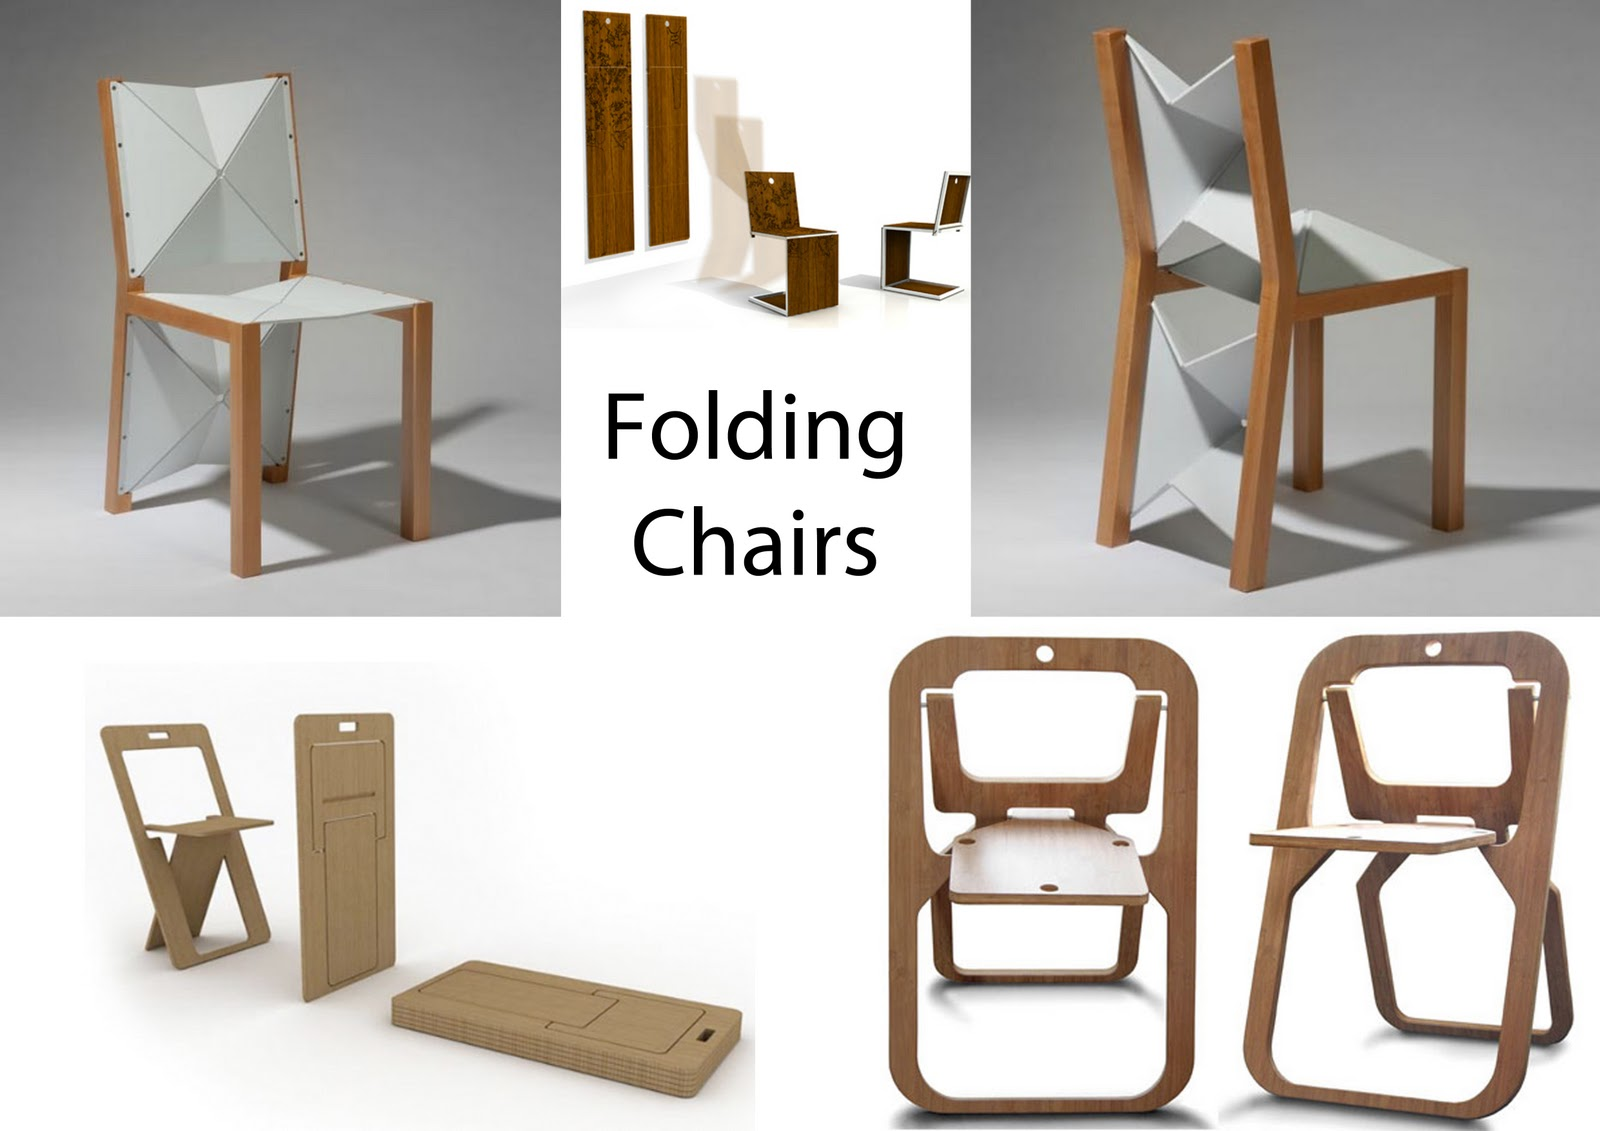 Tara britton chair folding chairs origami plays a huge role in folding chairs and also bottom two pictures helps save on materials by using just one flat bit of material jeuxipadfo Gallery